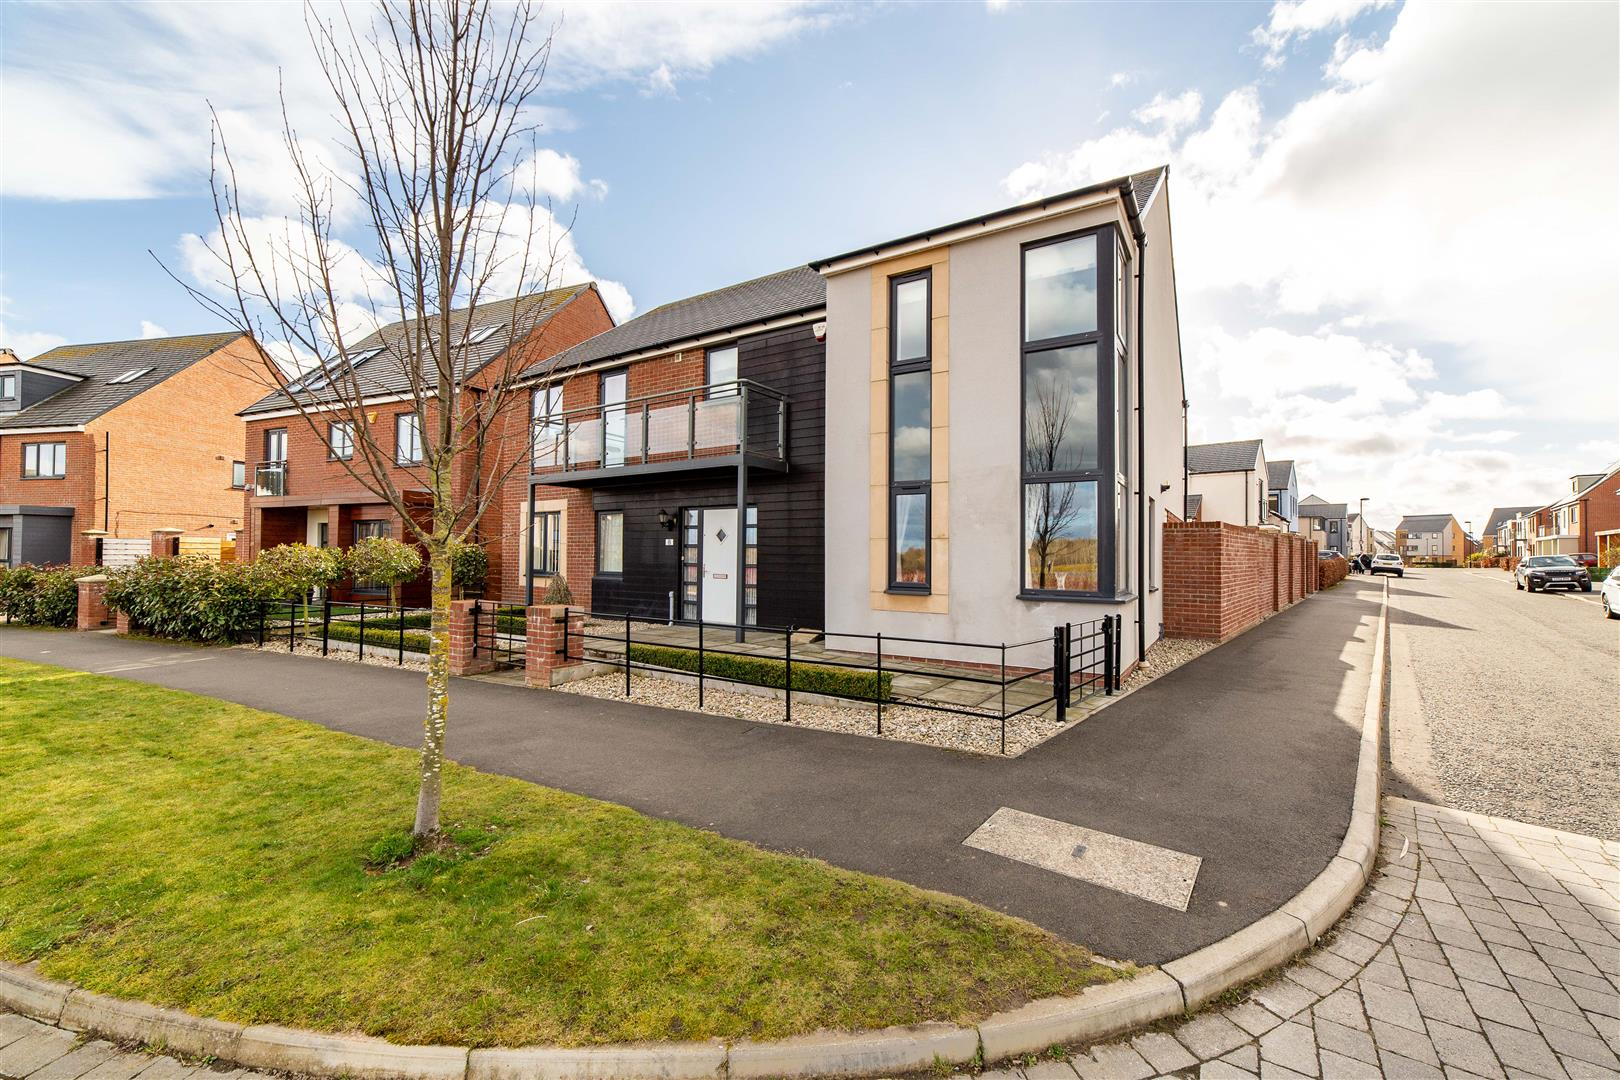 4 bed detached house for sale in Spindlestone View, Great Park  - Property Image 1